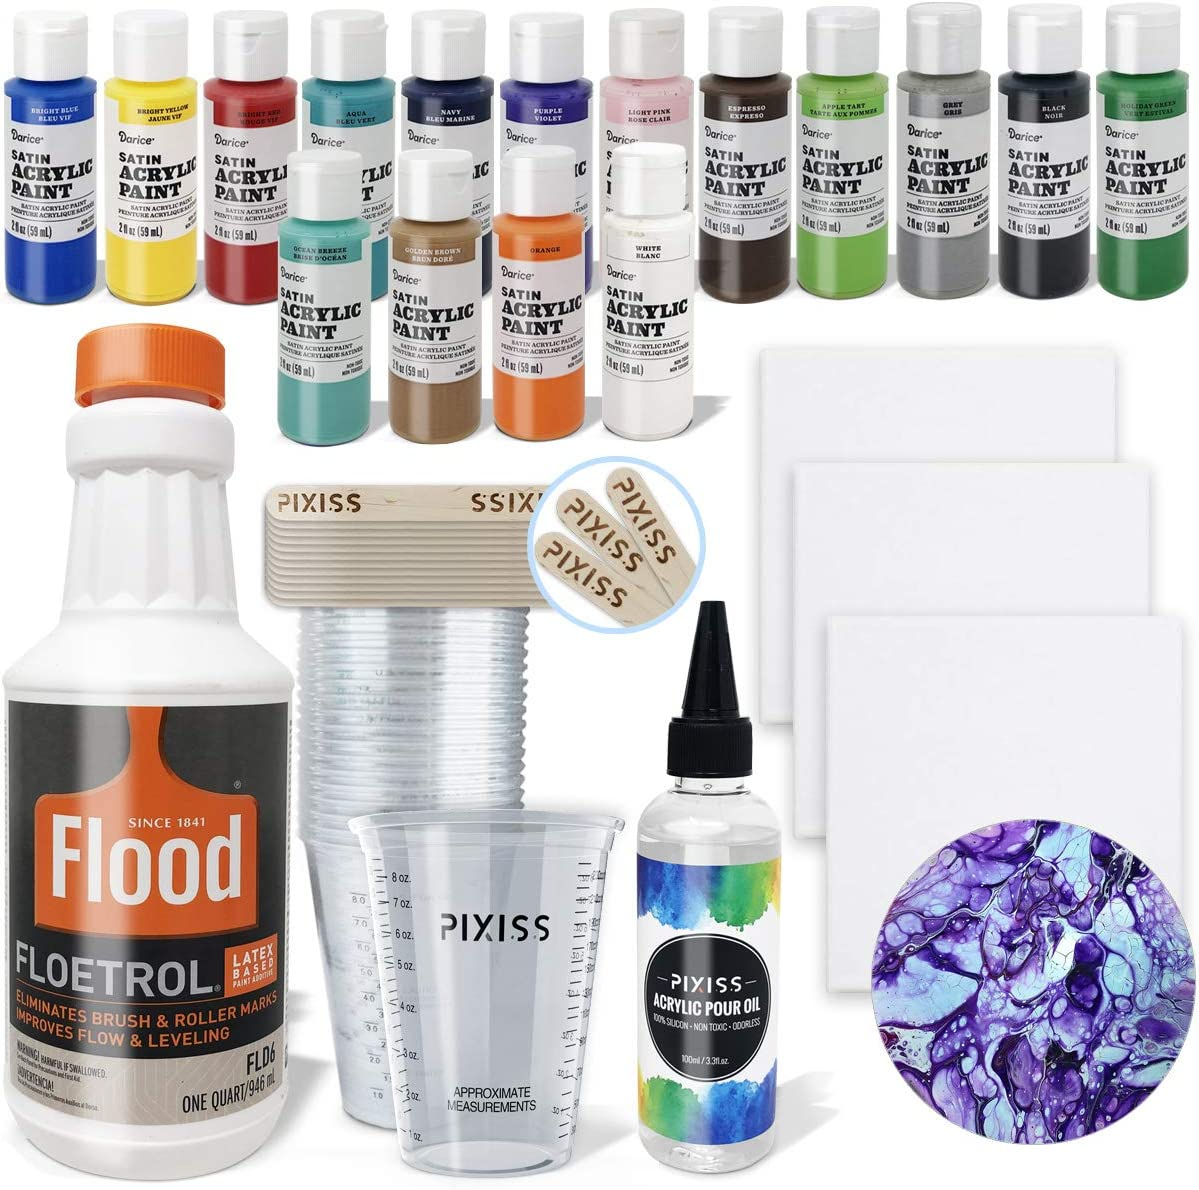 Amazon Com Acrylic Paint Pouring Kit Floetrol Pouring Medium For Acrylic Paints Cups 16x 2 Ounce Acrylic Paints 3x Canvases Pixiss Acrylic Pouring Oil Mixing Sticks Gloves Complete Paint Pouring Kit